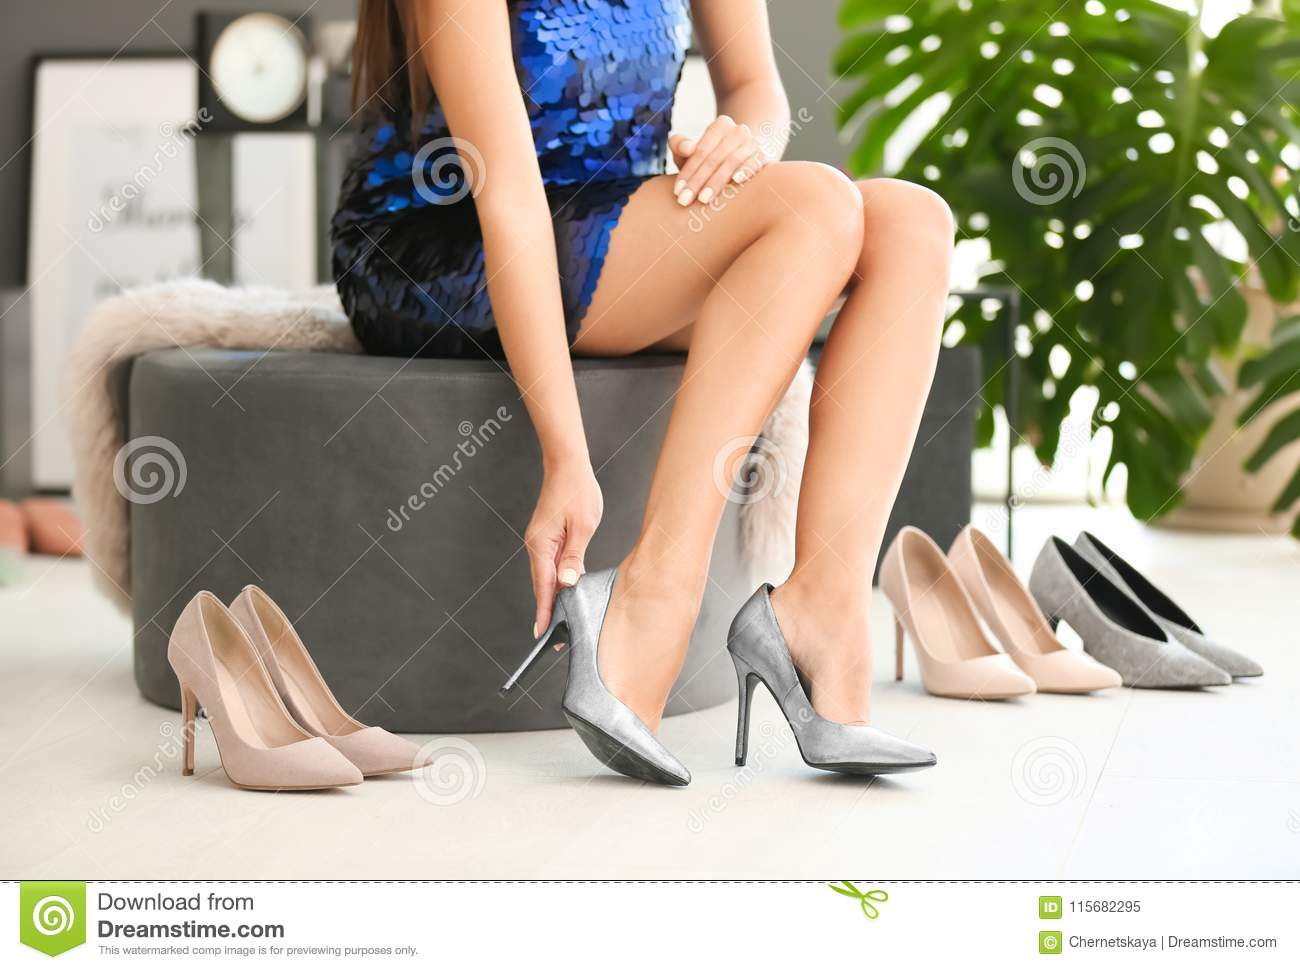 Young woman trying on high-heeled shoes